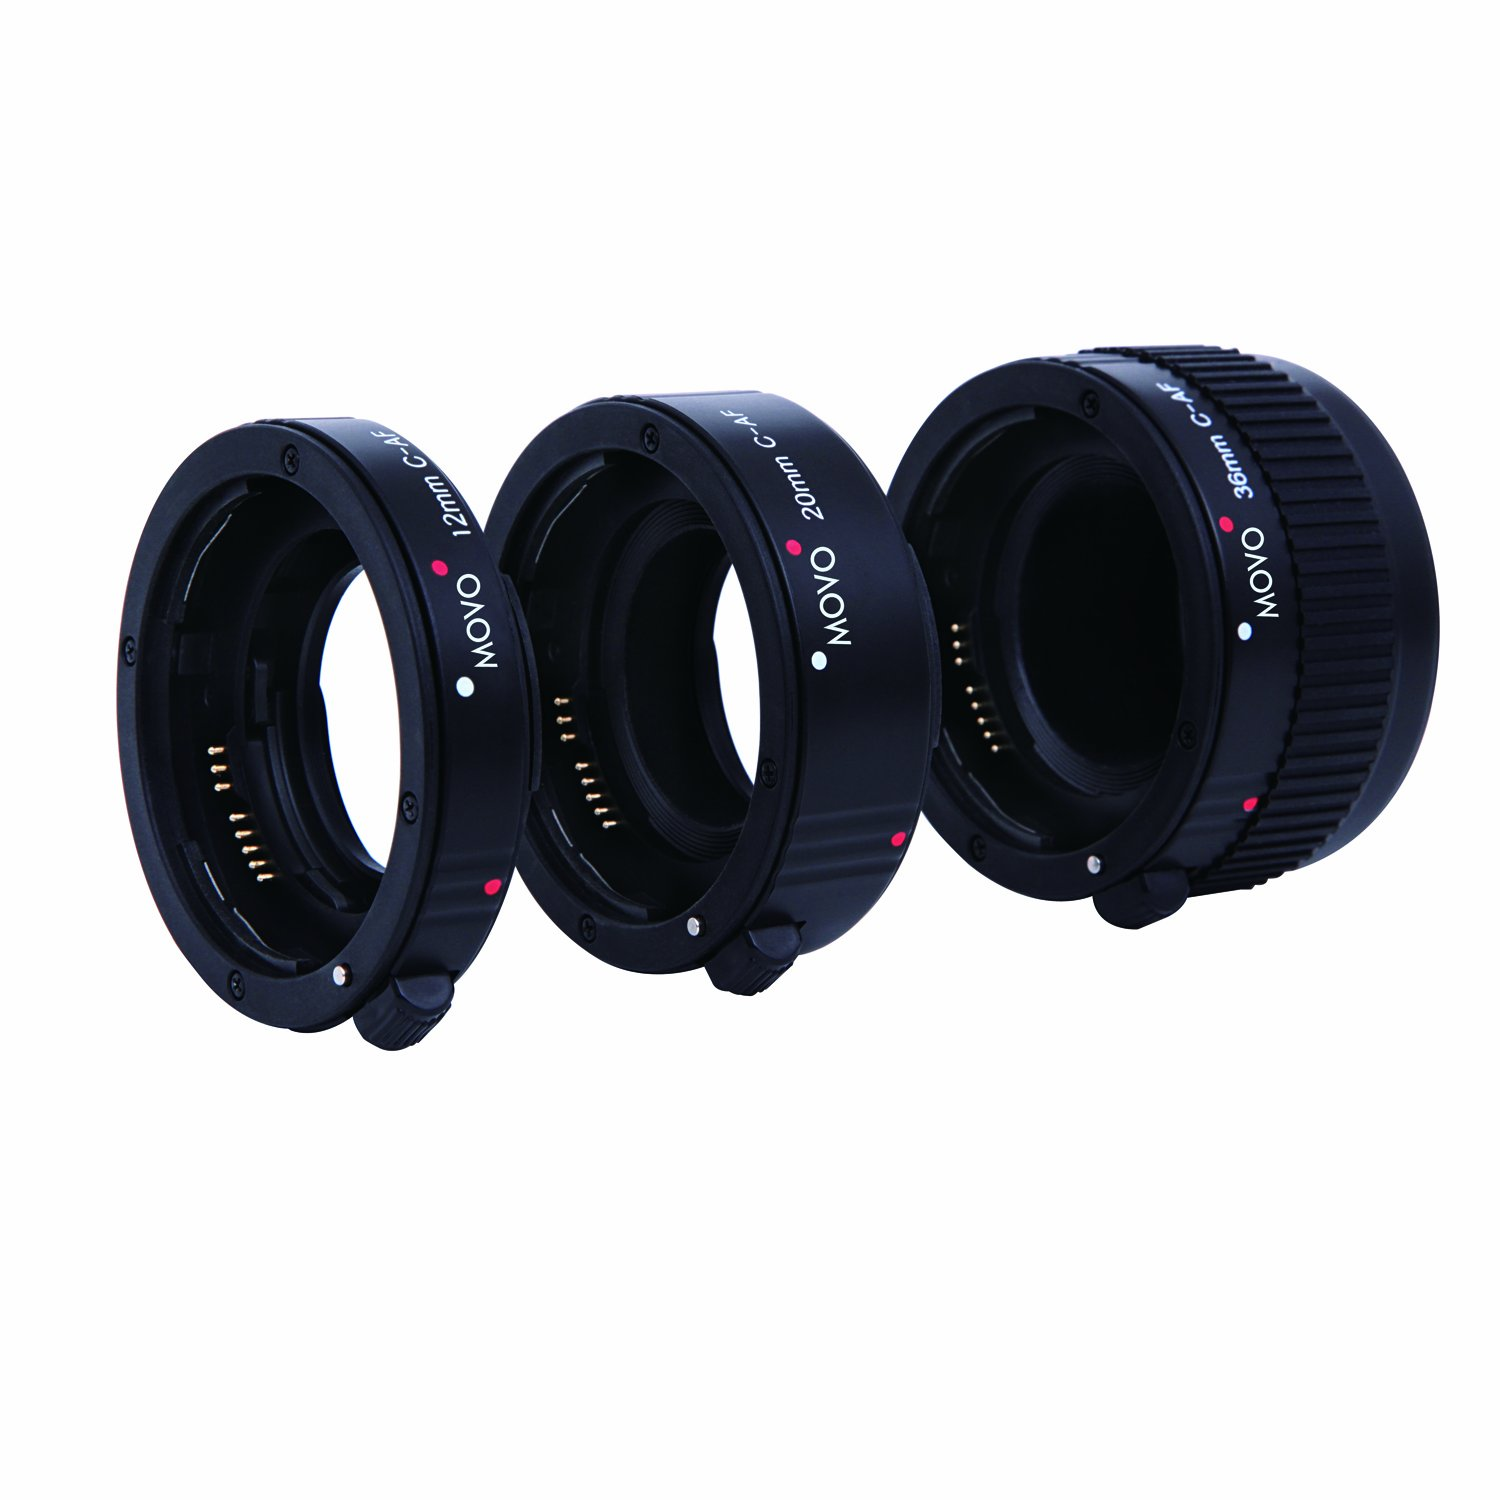 Movo Photo AF Macro Extension Tube Set for Canon EOS DSLR Camera with 12mm, 20mm & 36mm Tubes (Economy Mount) by Movo